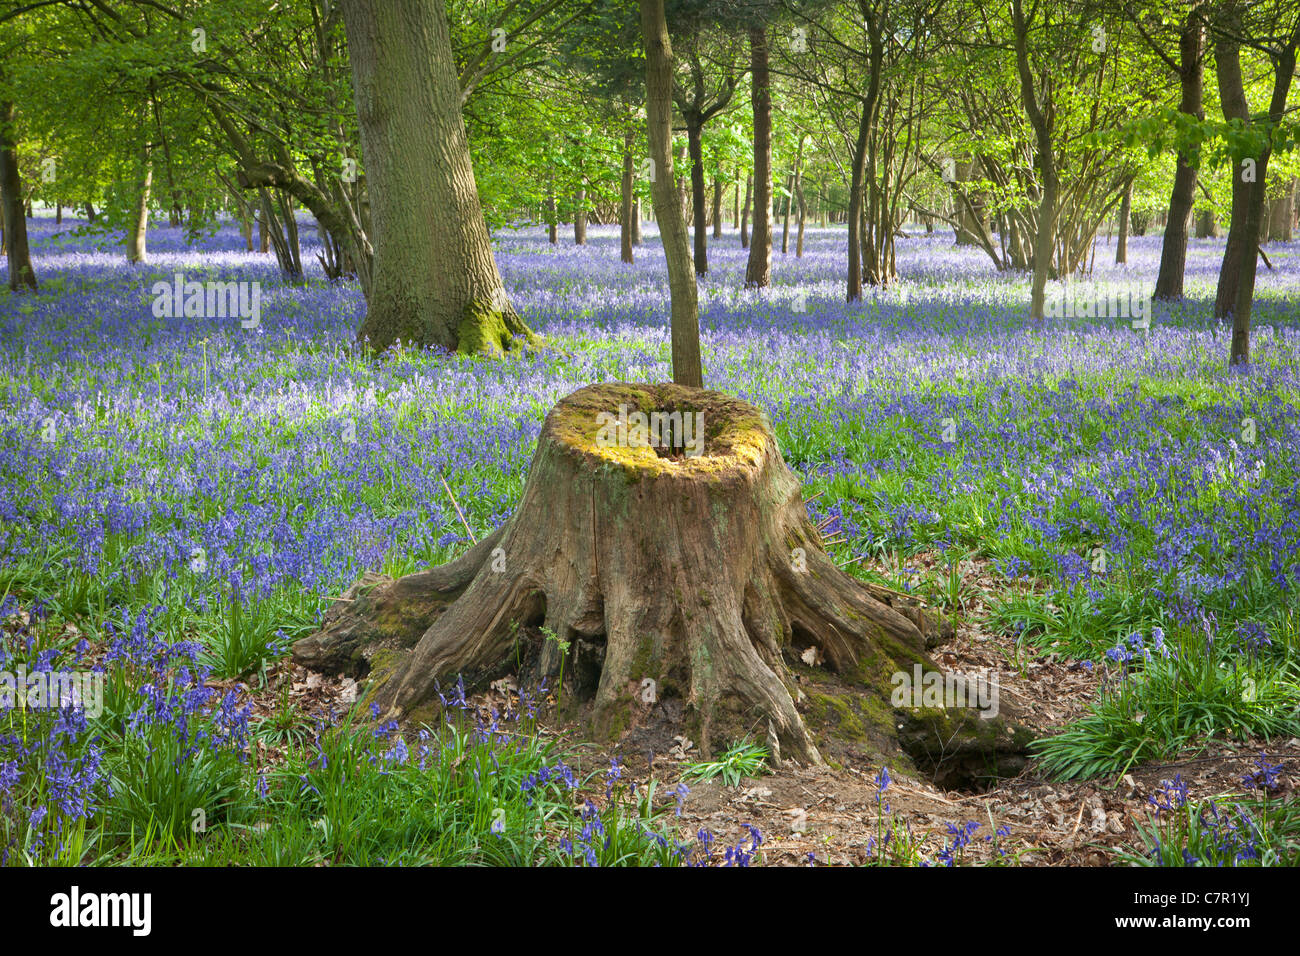 BLUEBELL FIELDS IN HAUGHLEY PARK - Stock Image